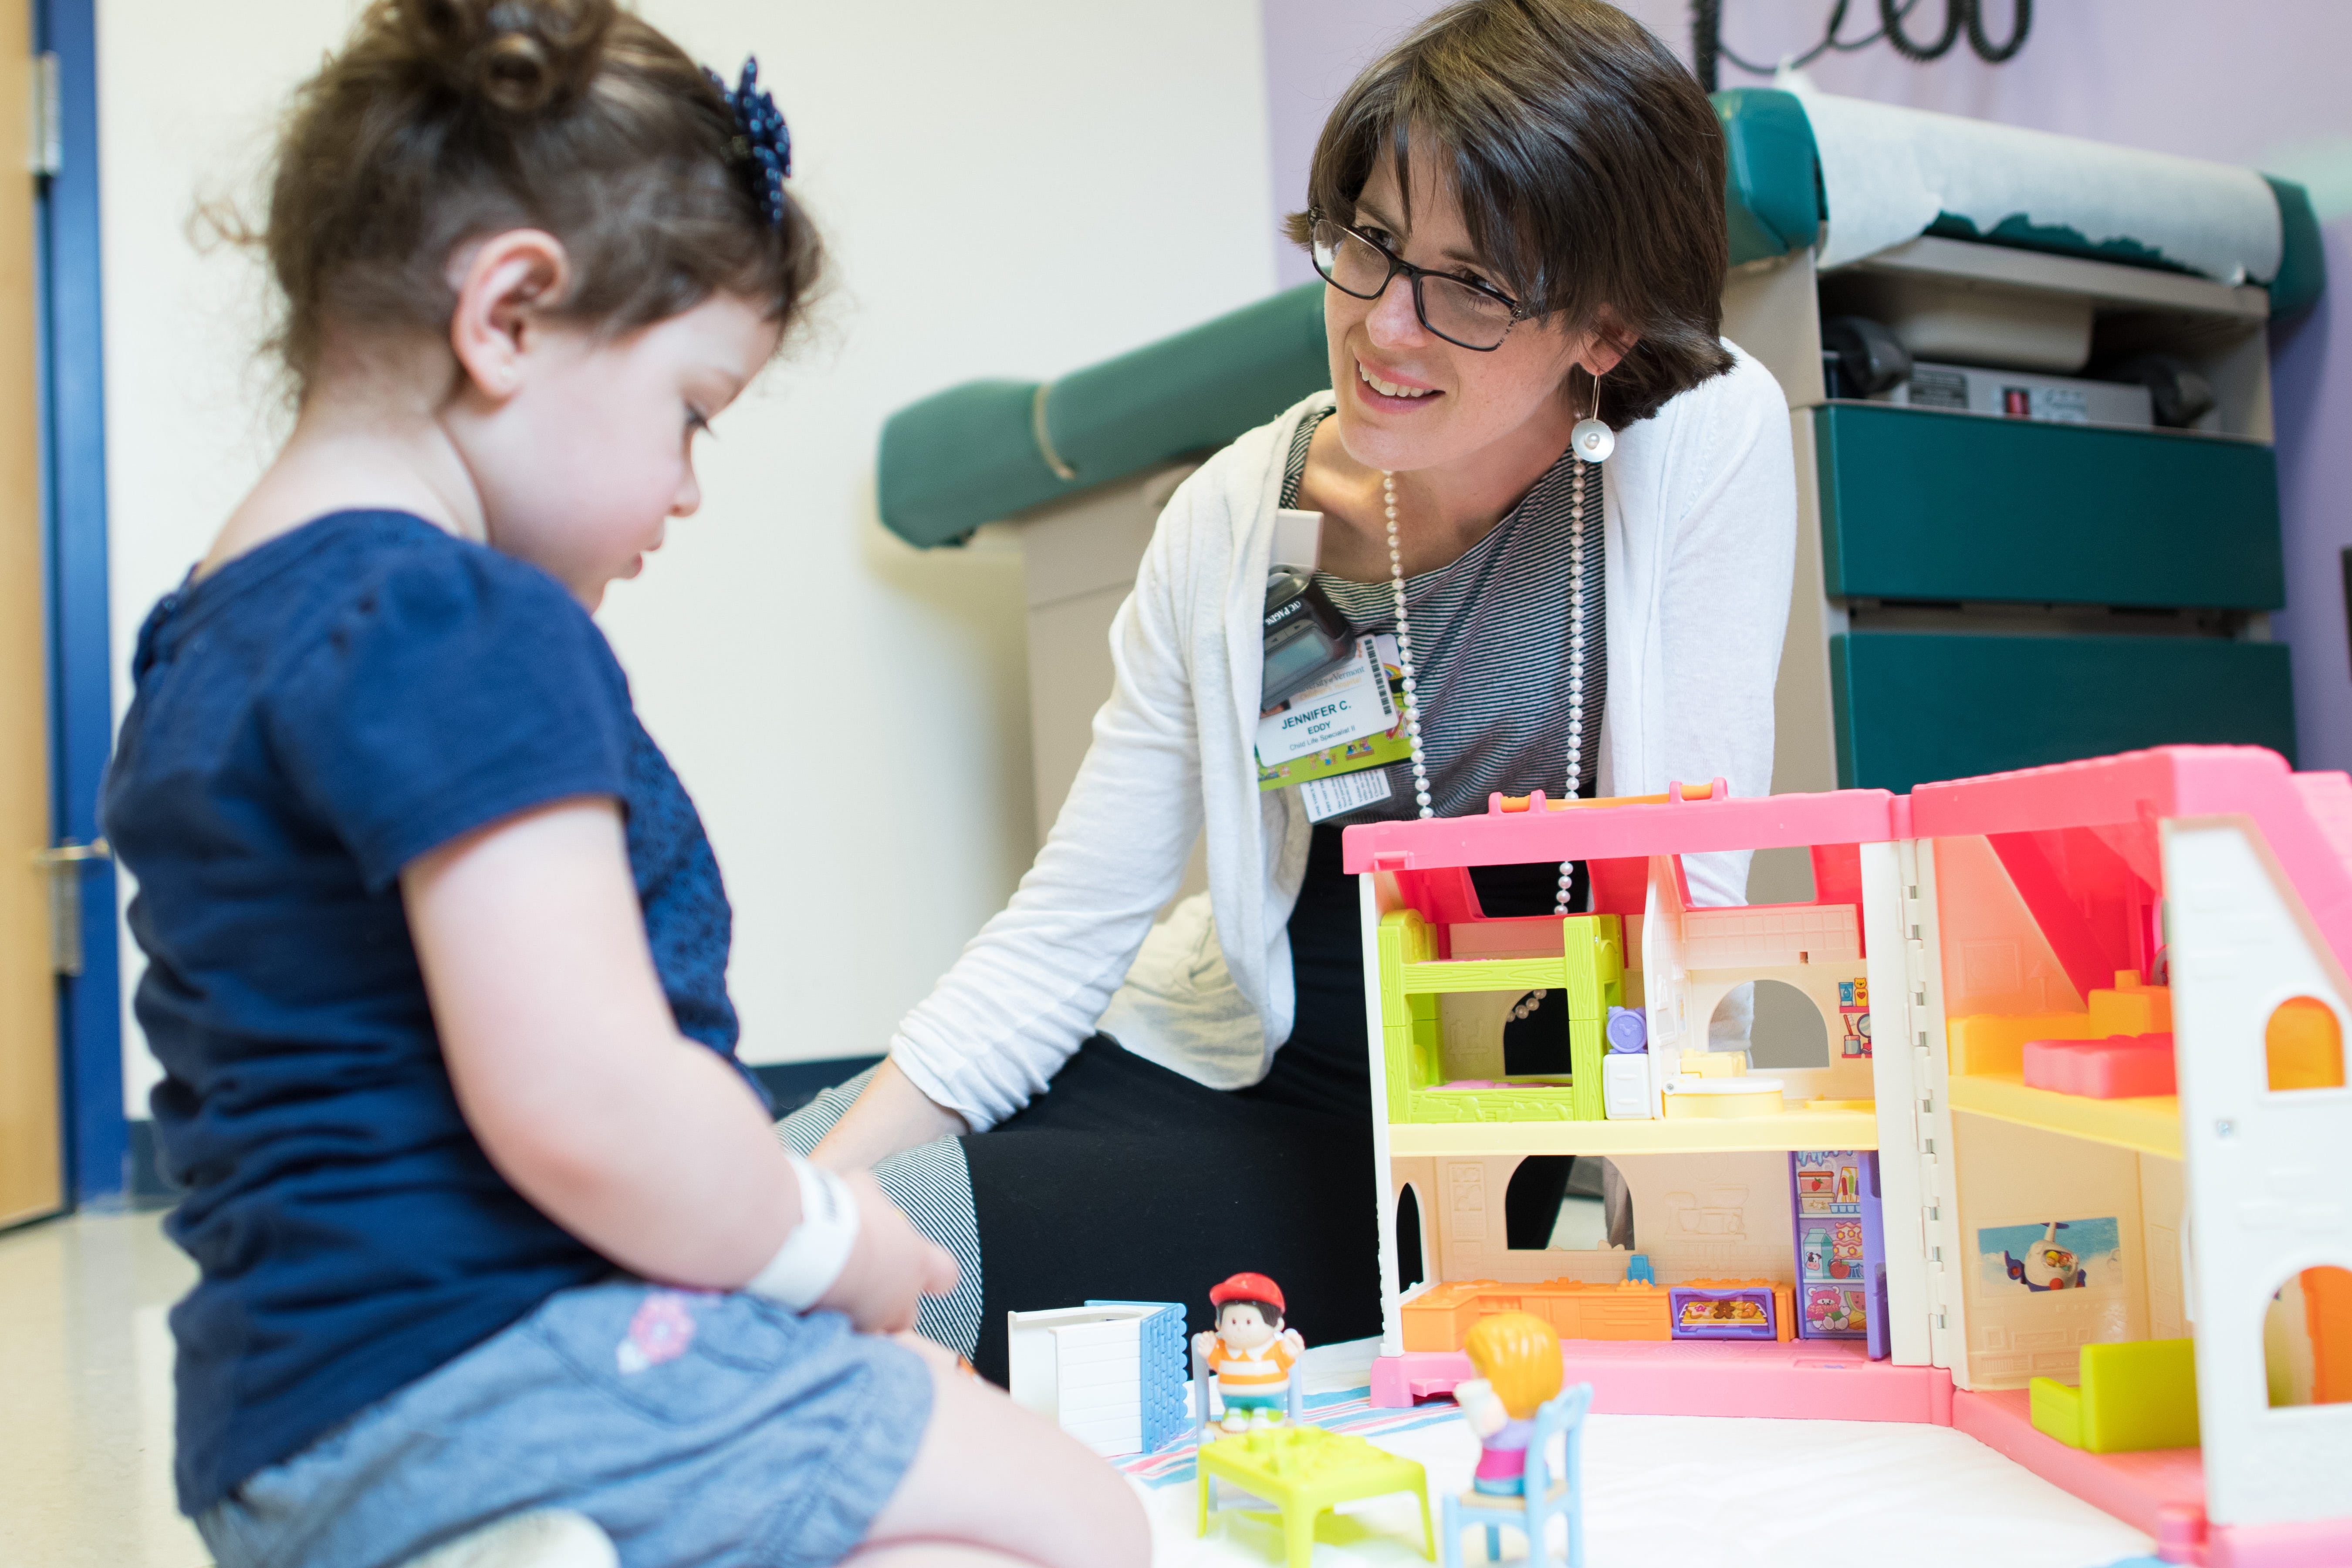 Child Life Specialists Reduce Anxiety For Children And Families